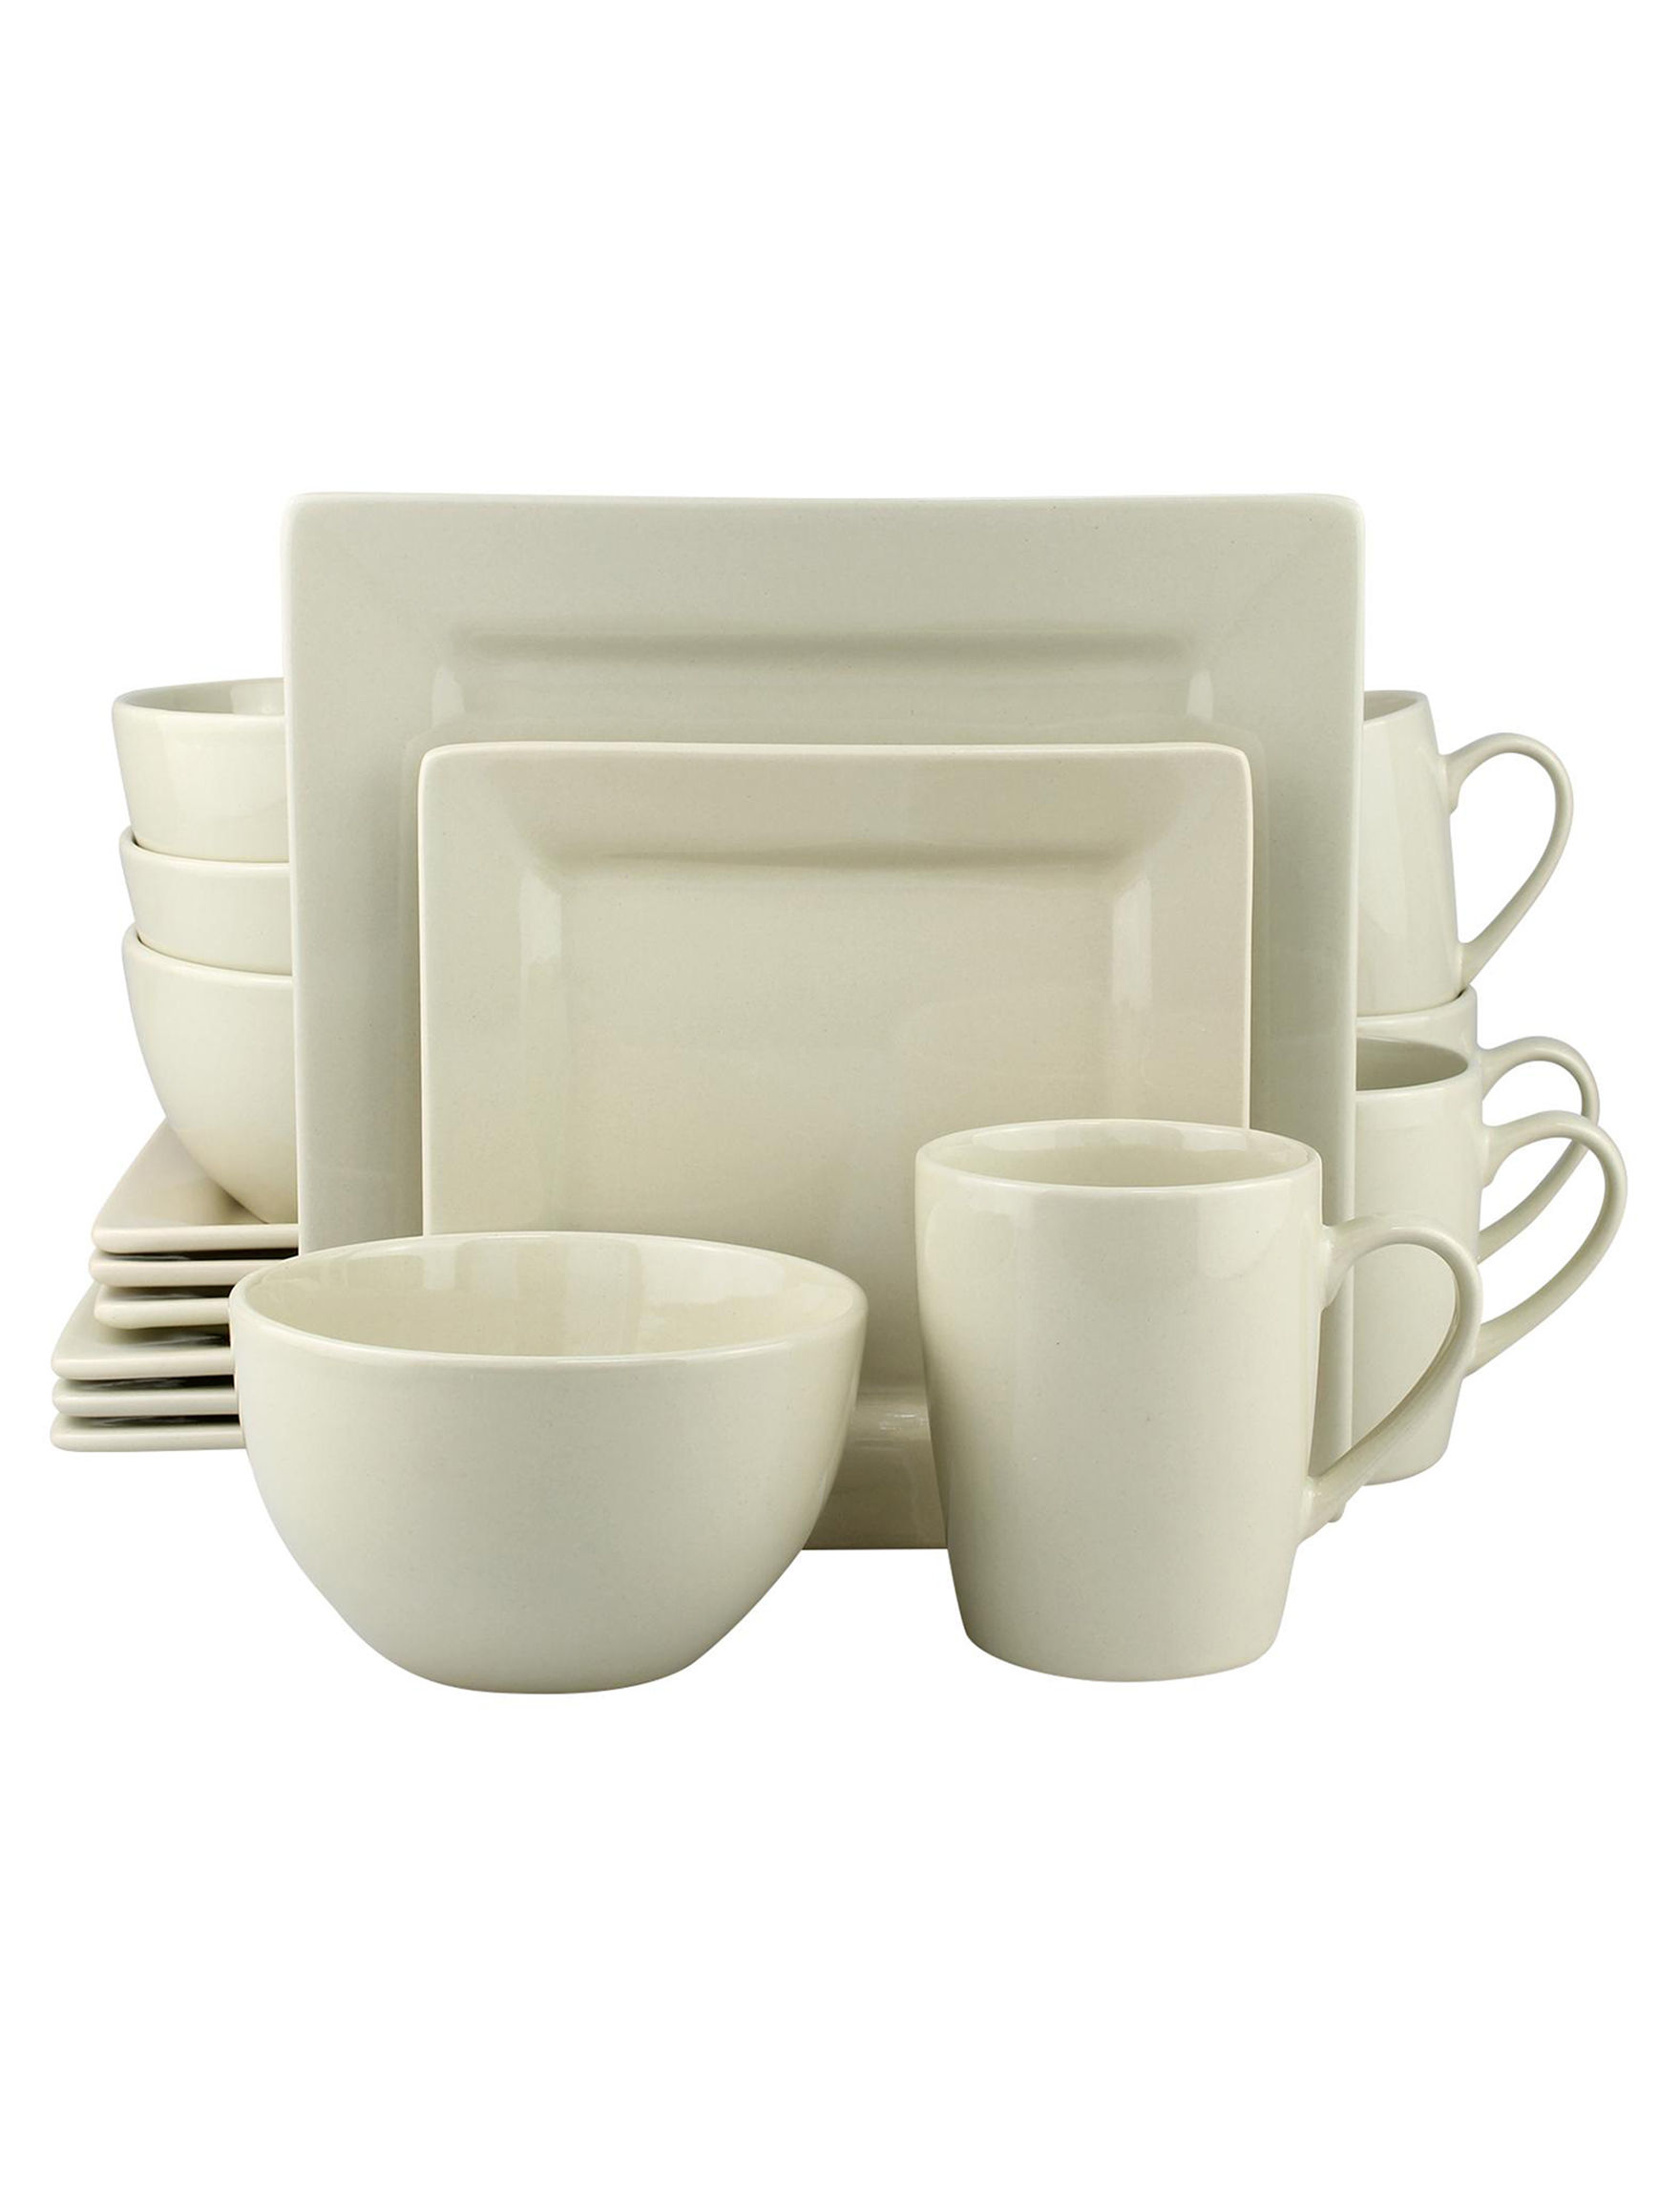 Closeout! Manor Lane Home 16-pc. Dinnerware Set  sc 1 st  Stage Stores & Closeout! Manor Lane Home 16-pc. Dinnerware Set   Stage Stores